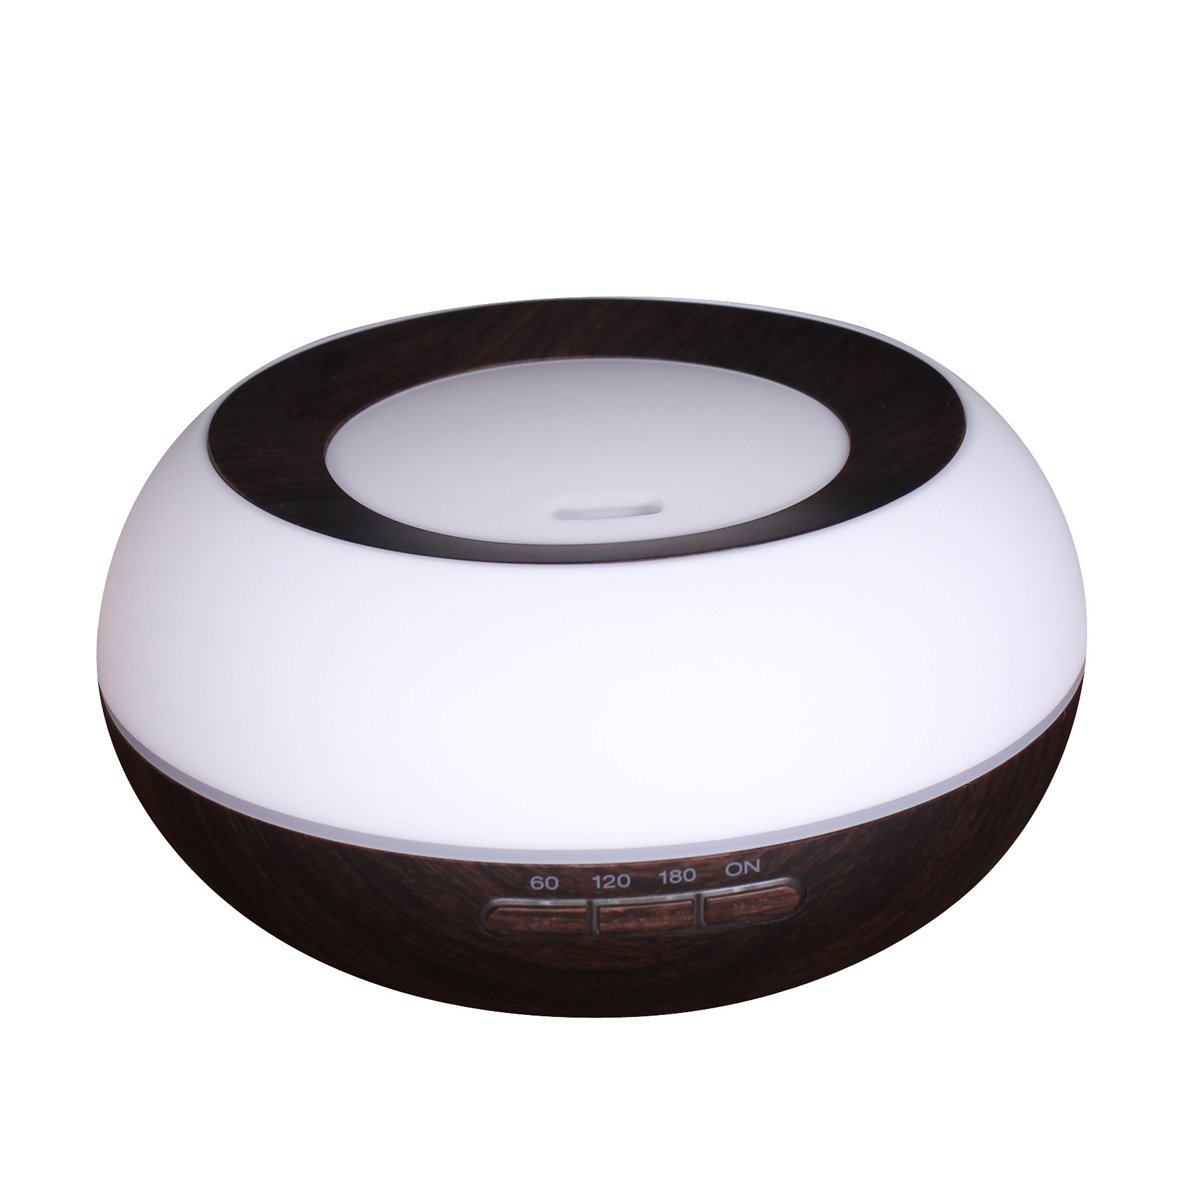 iQbe 200ml Aromatherapy Essential Oil Diffuser LED Lamps Waterless Auto Shut-off for Office Home Bedroom Living Room Study Baby-Black+White